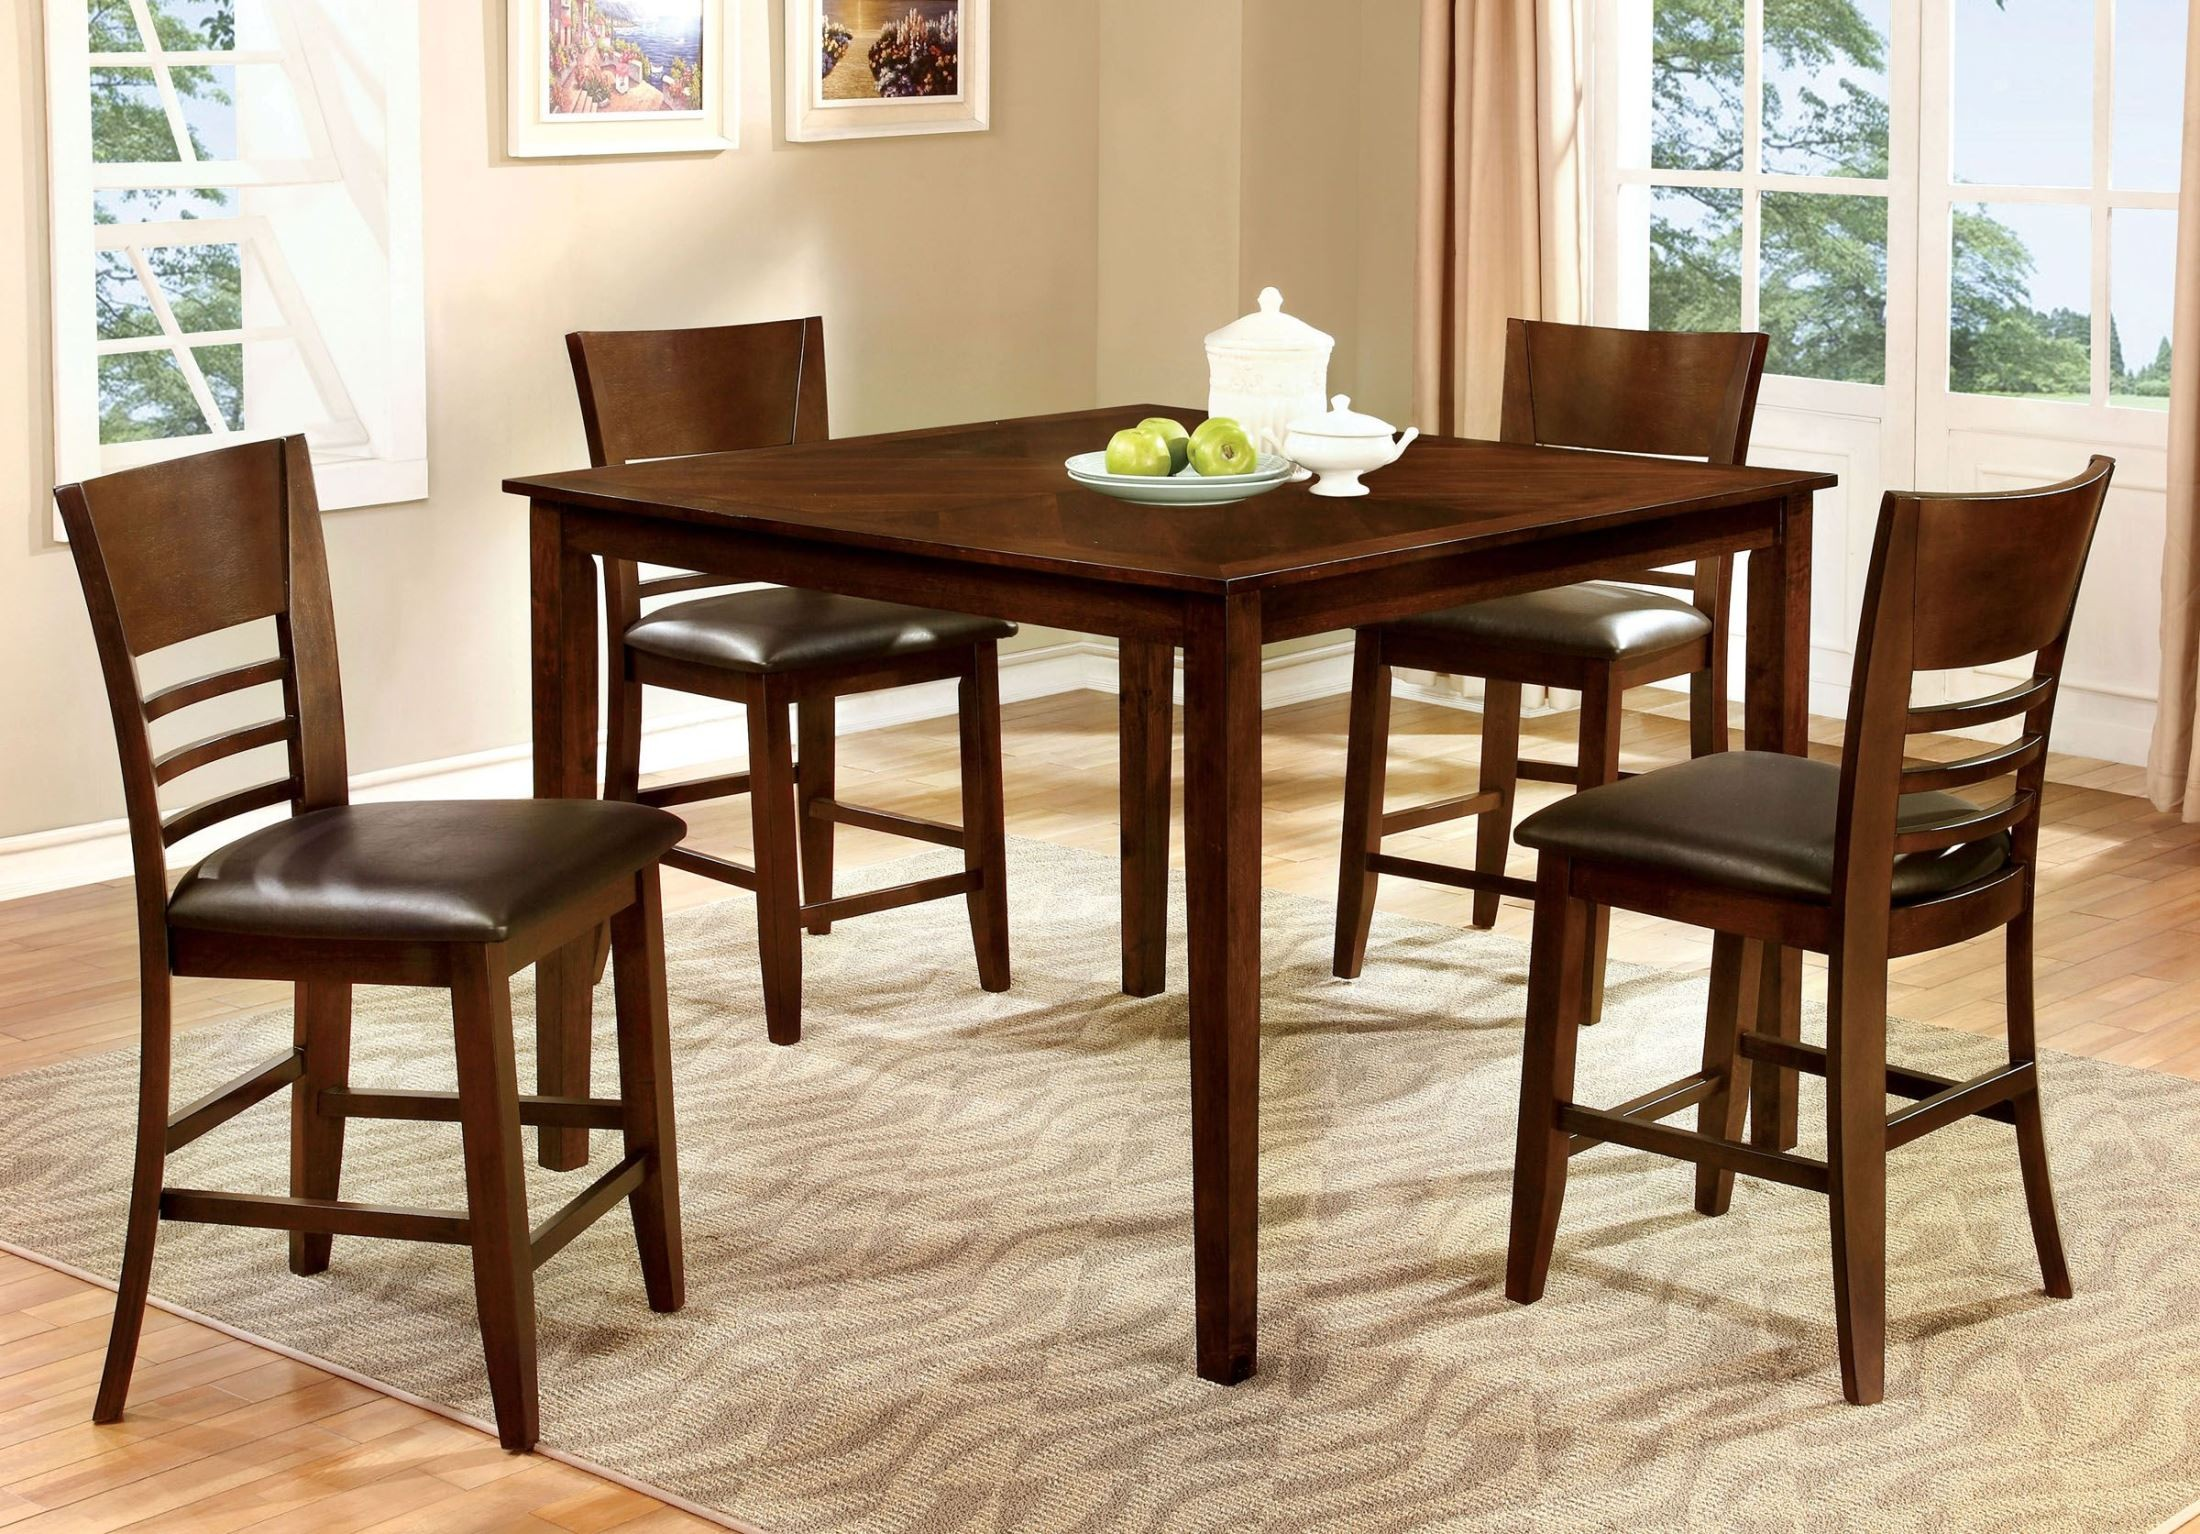 Dining Table Height Cm Hillsview Ii Brown Cherry 5 Piece Counter Height Table Set